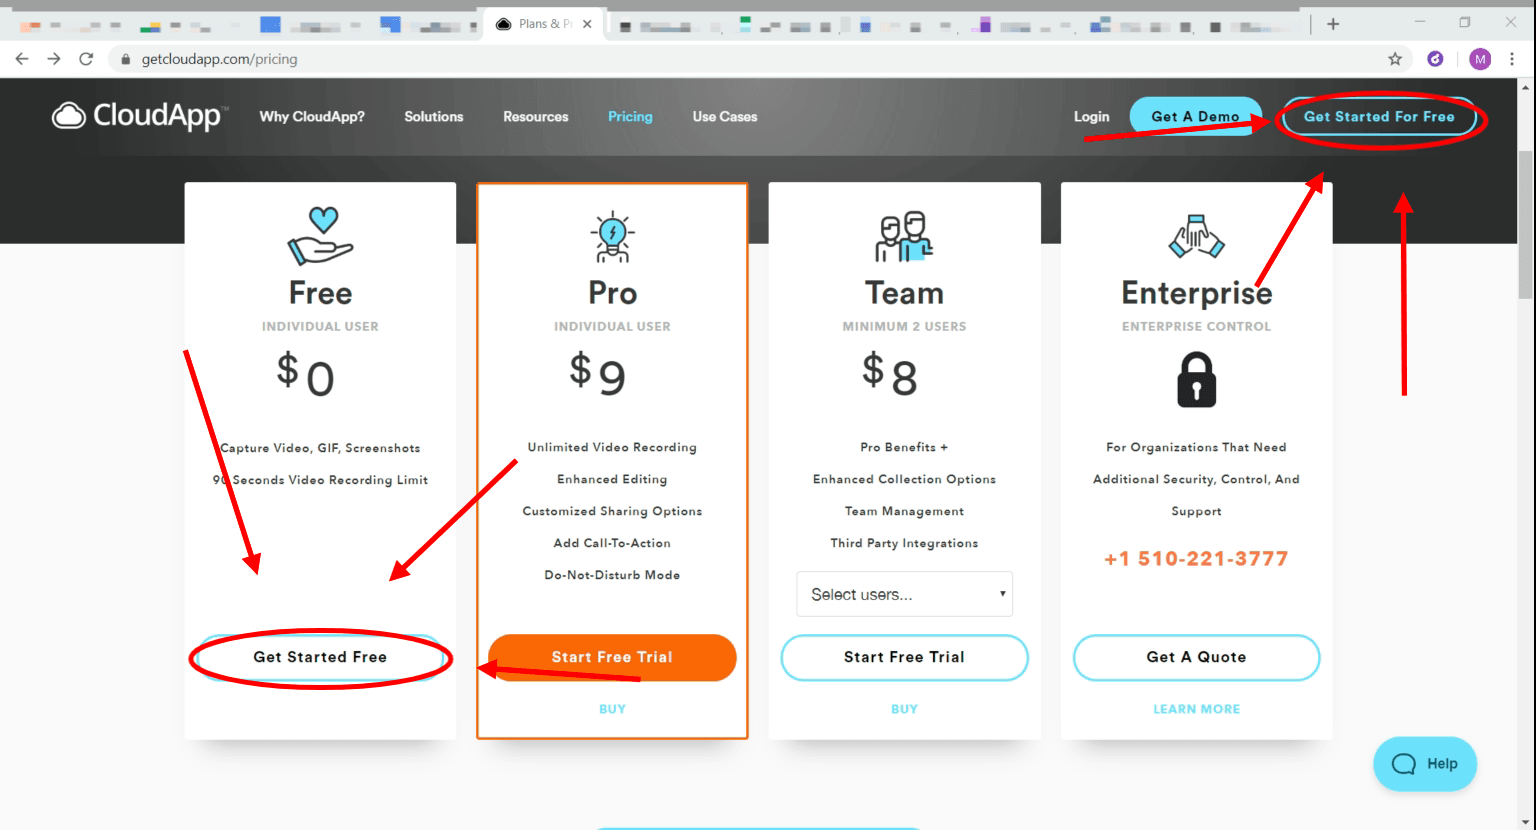 cloudapp pricing page with get started for free circled in red